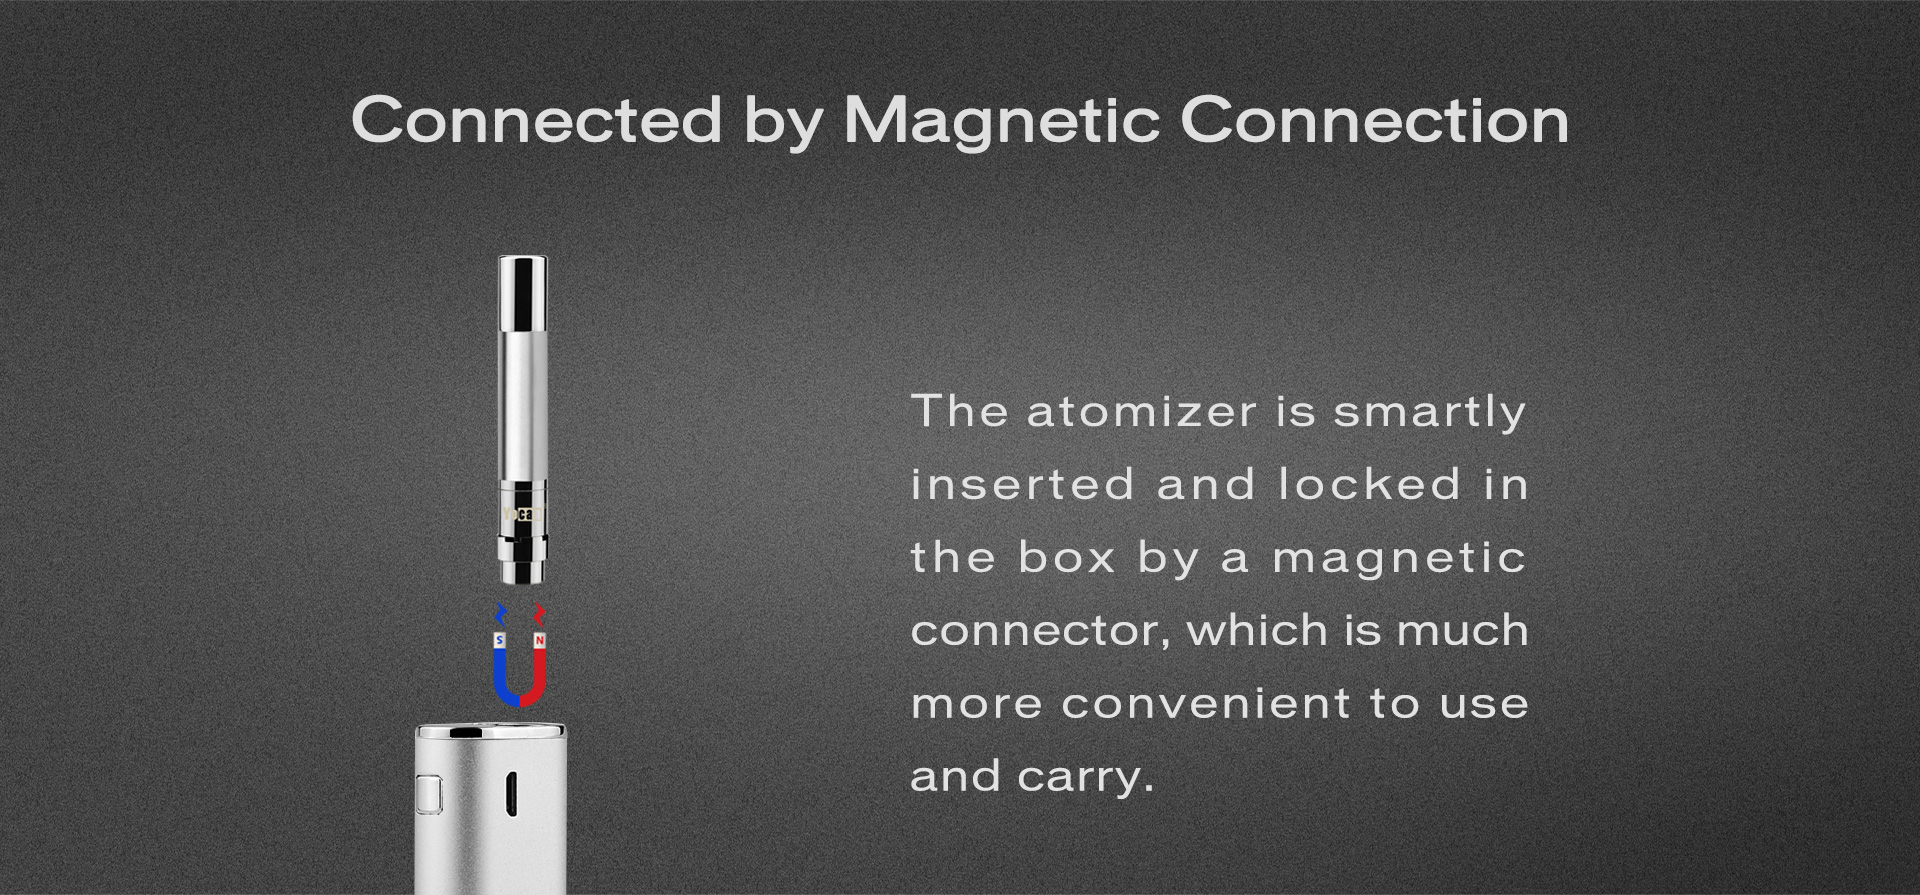 The Yocan Hive atomizer connected by magnetic connection.